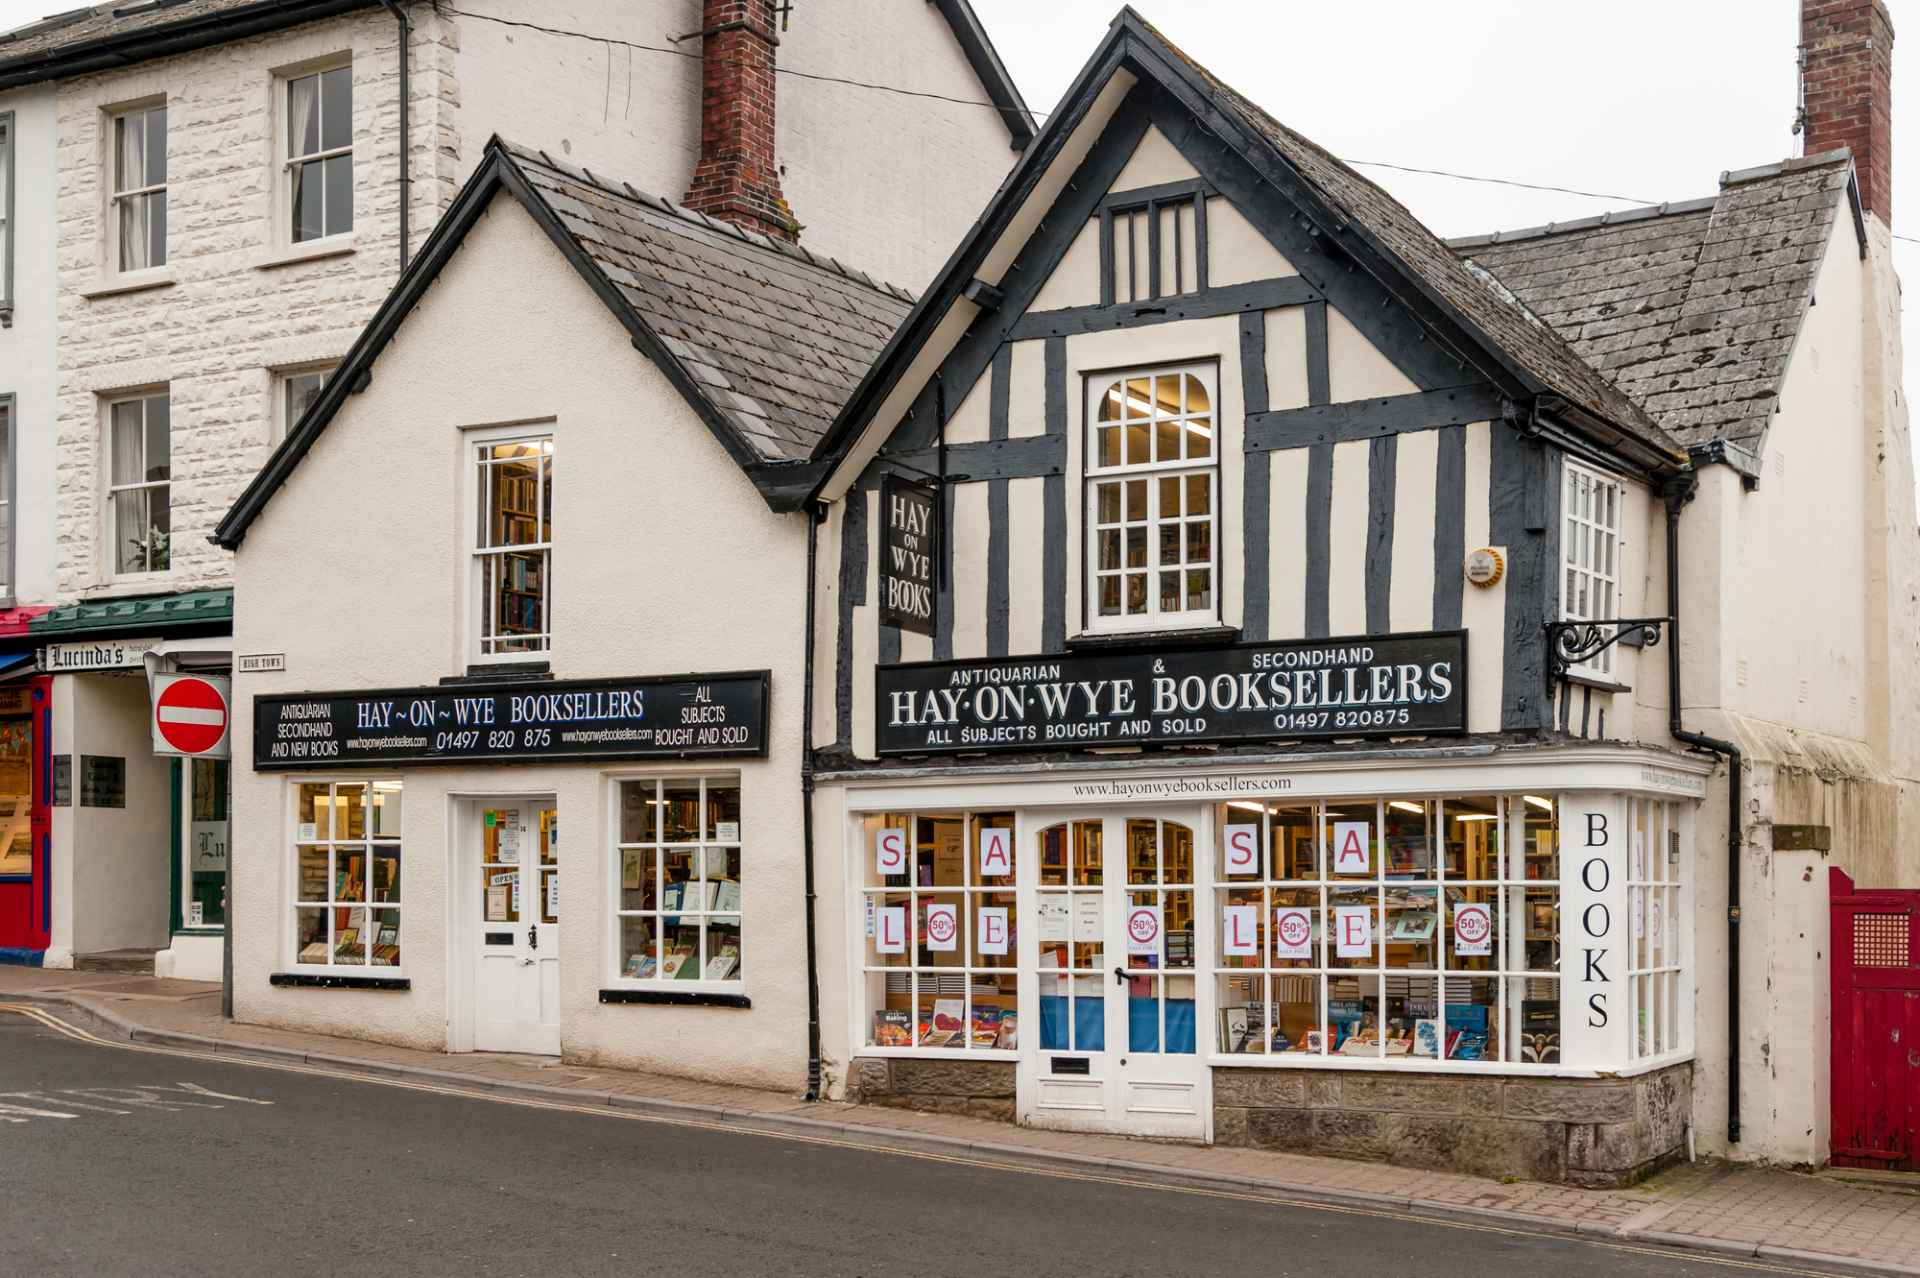 old-historic-hay-on-wye-booksellers-bookshop